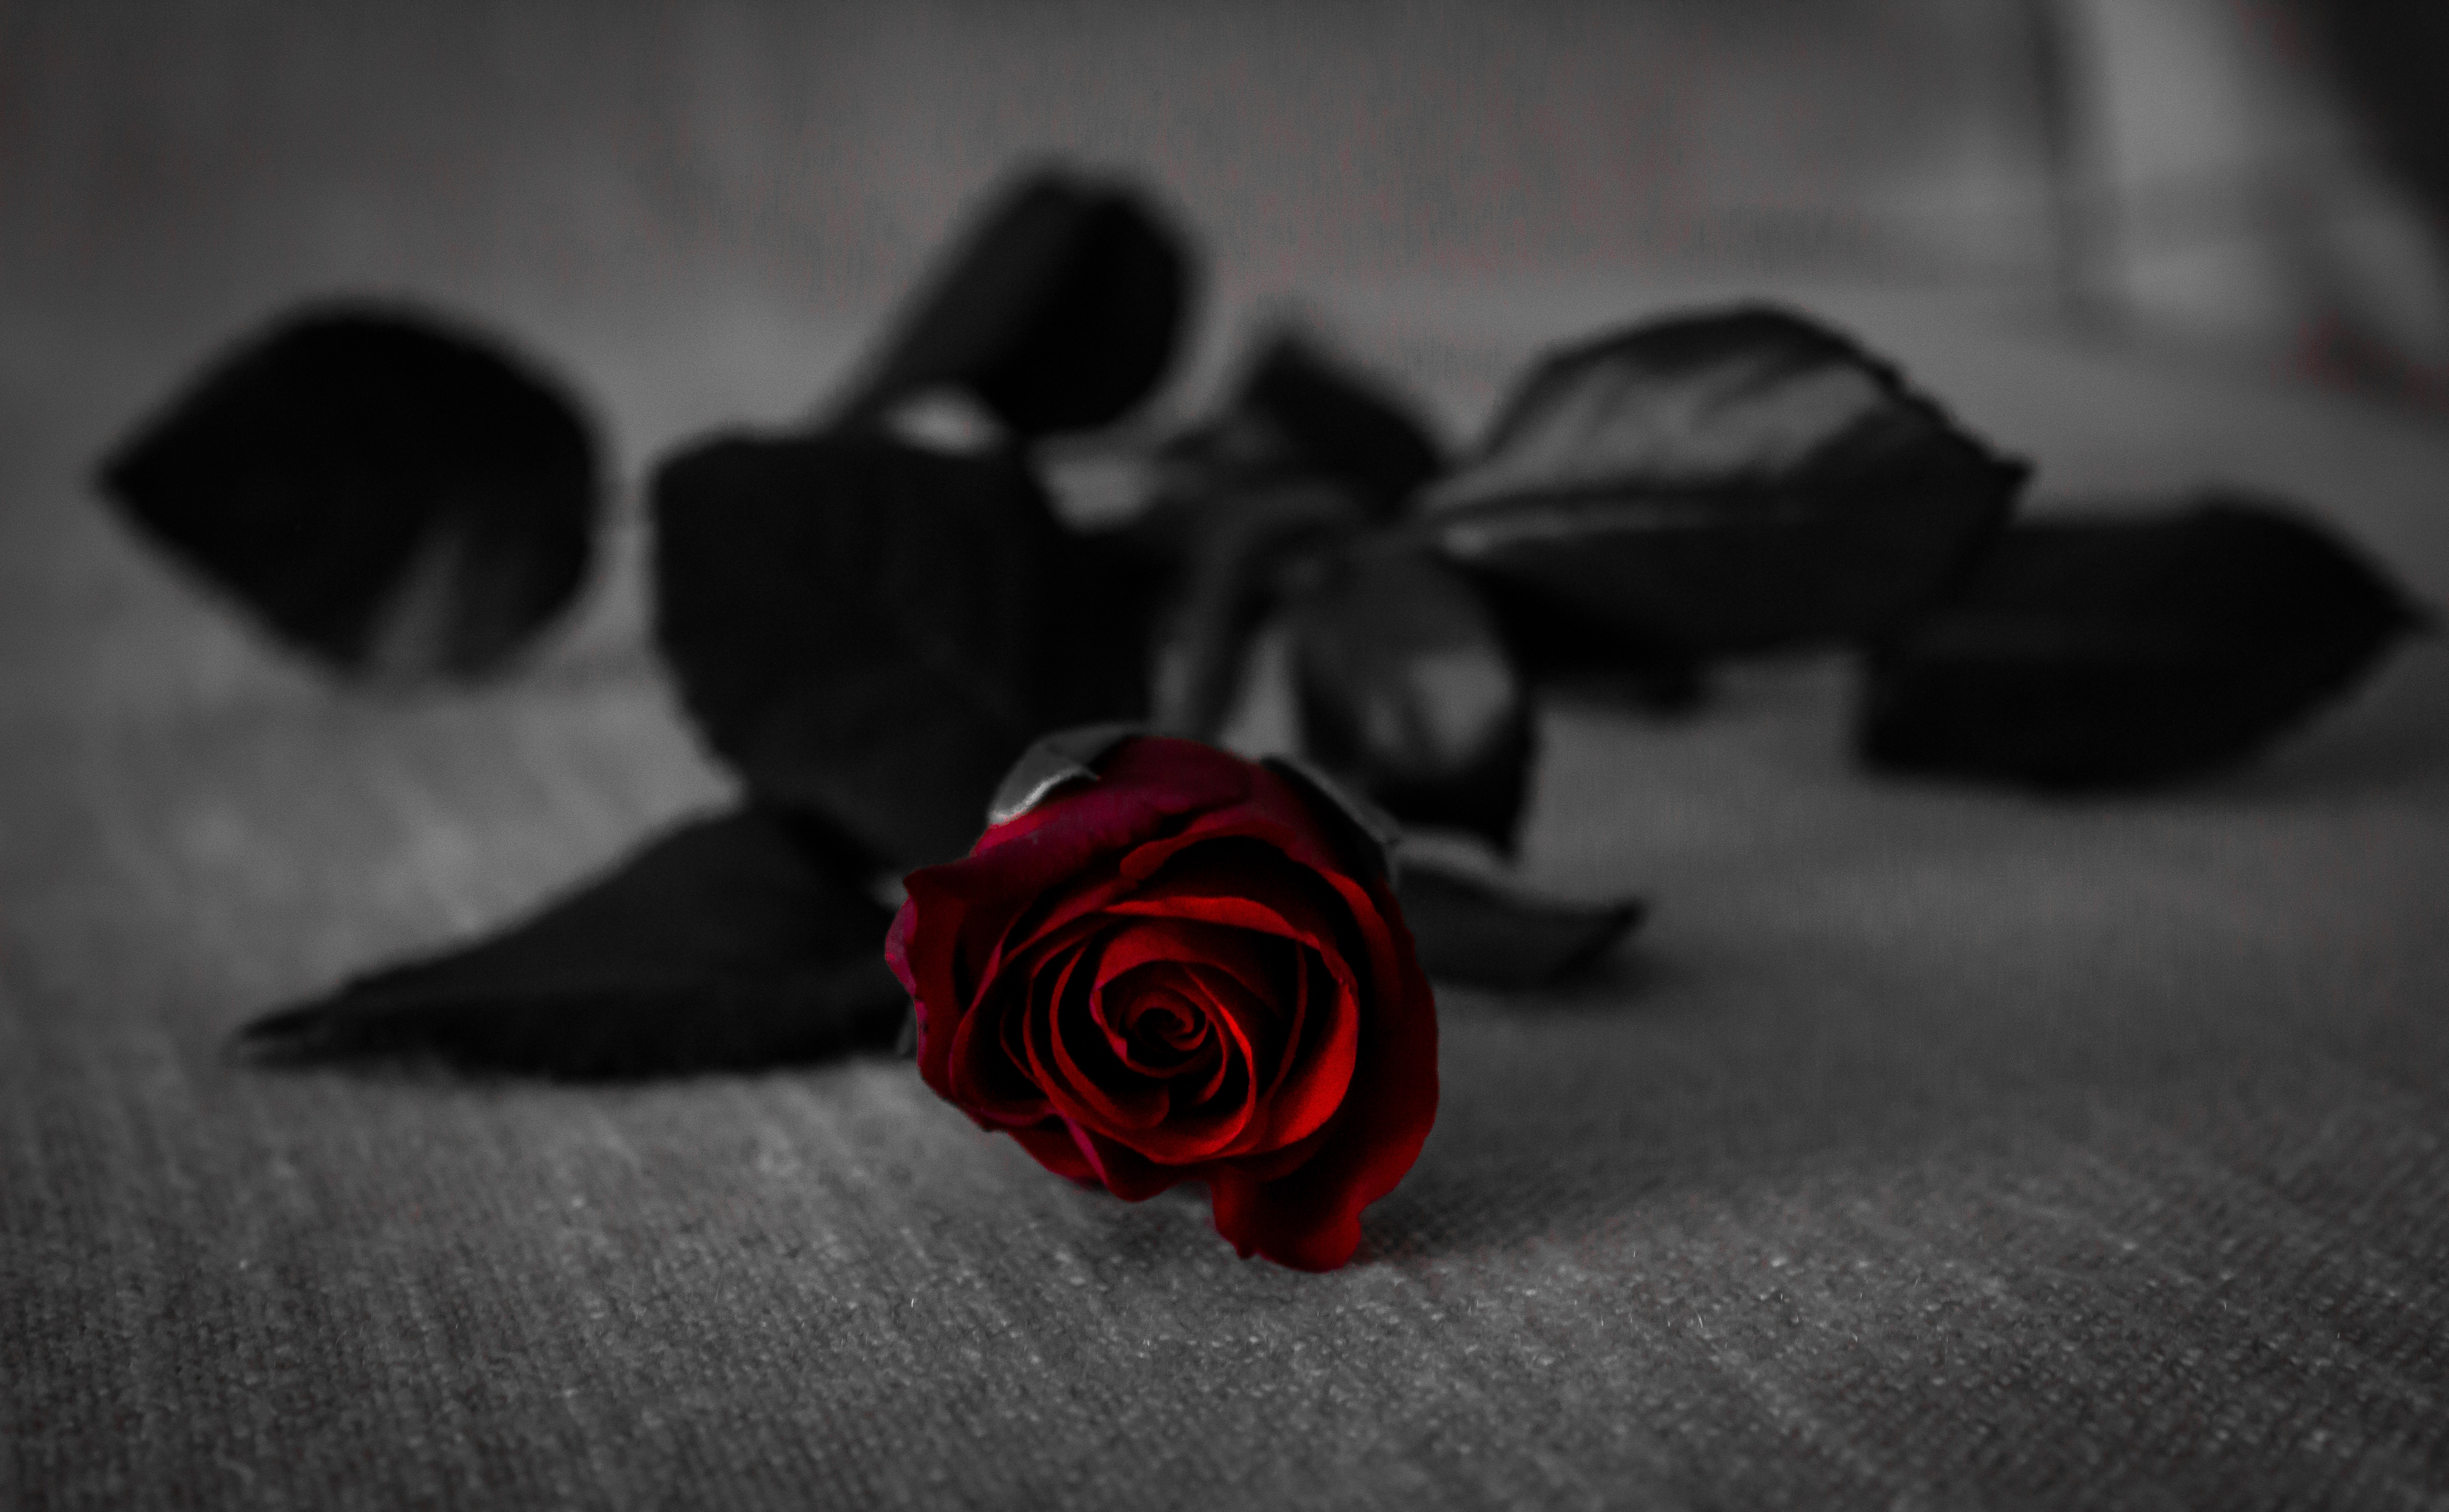 Red rose with black leaves on grey textile · free stock photo